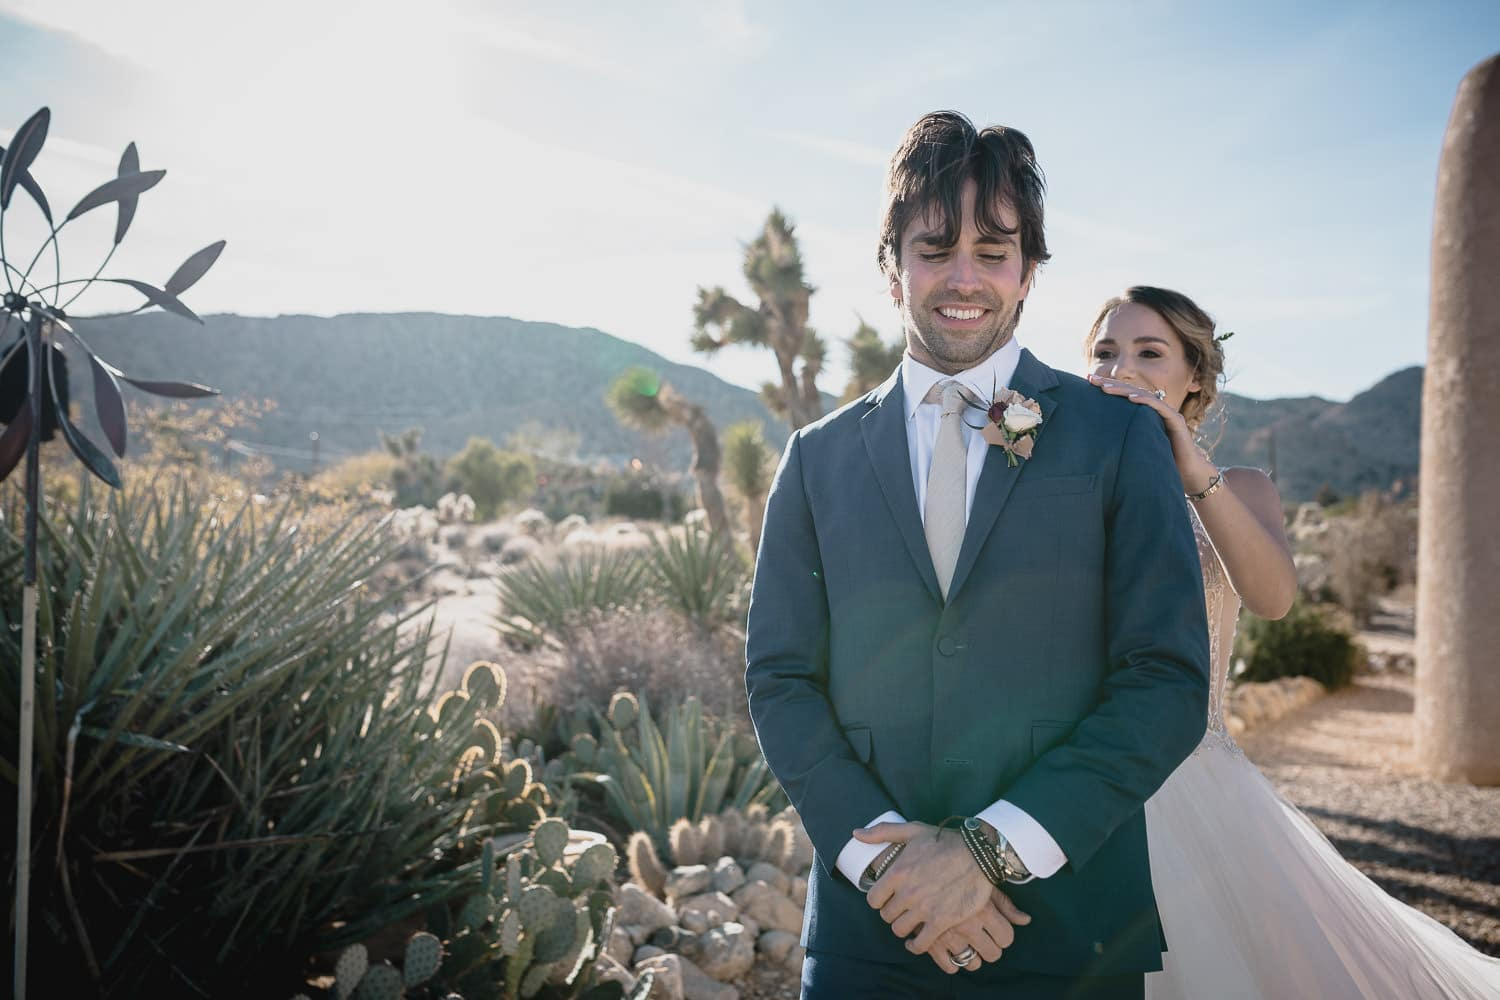 Melanie + Anthony Joshua Tree Intimate Elopement 9